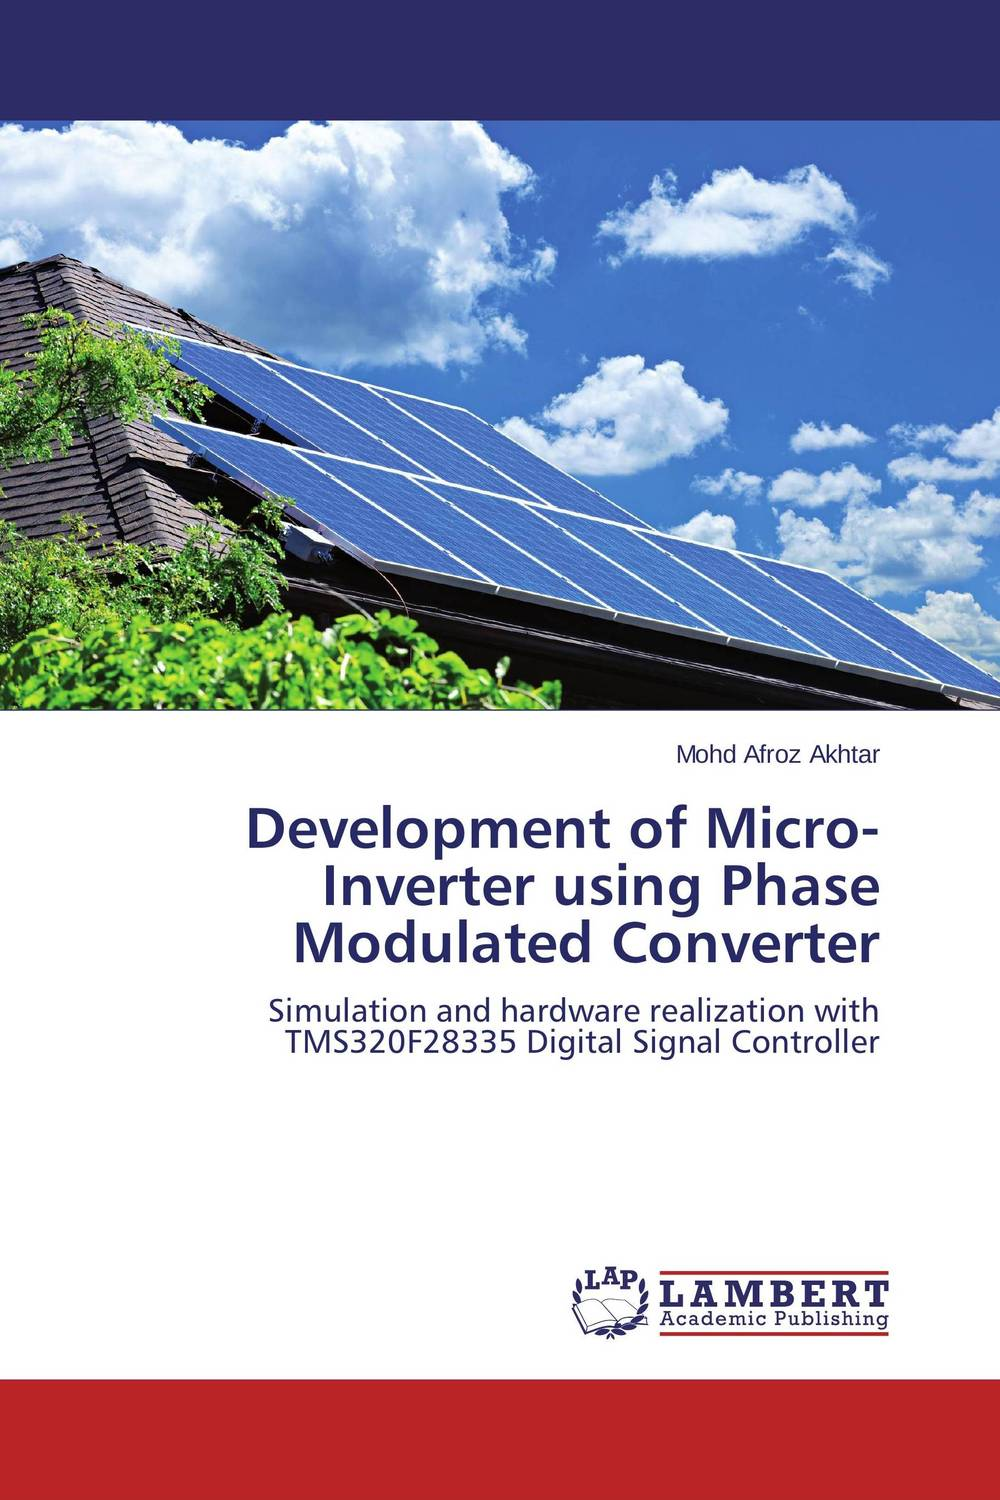 Development of Micro-Inverter using Phase Modulated Converter купить